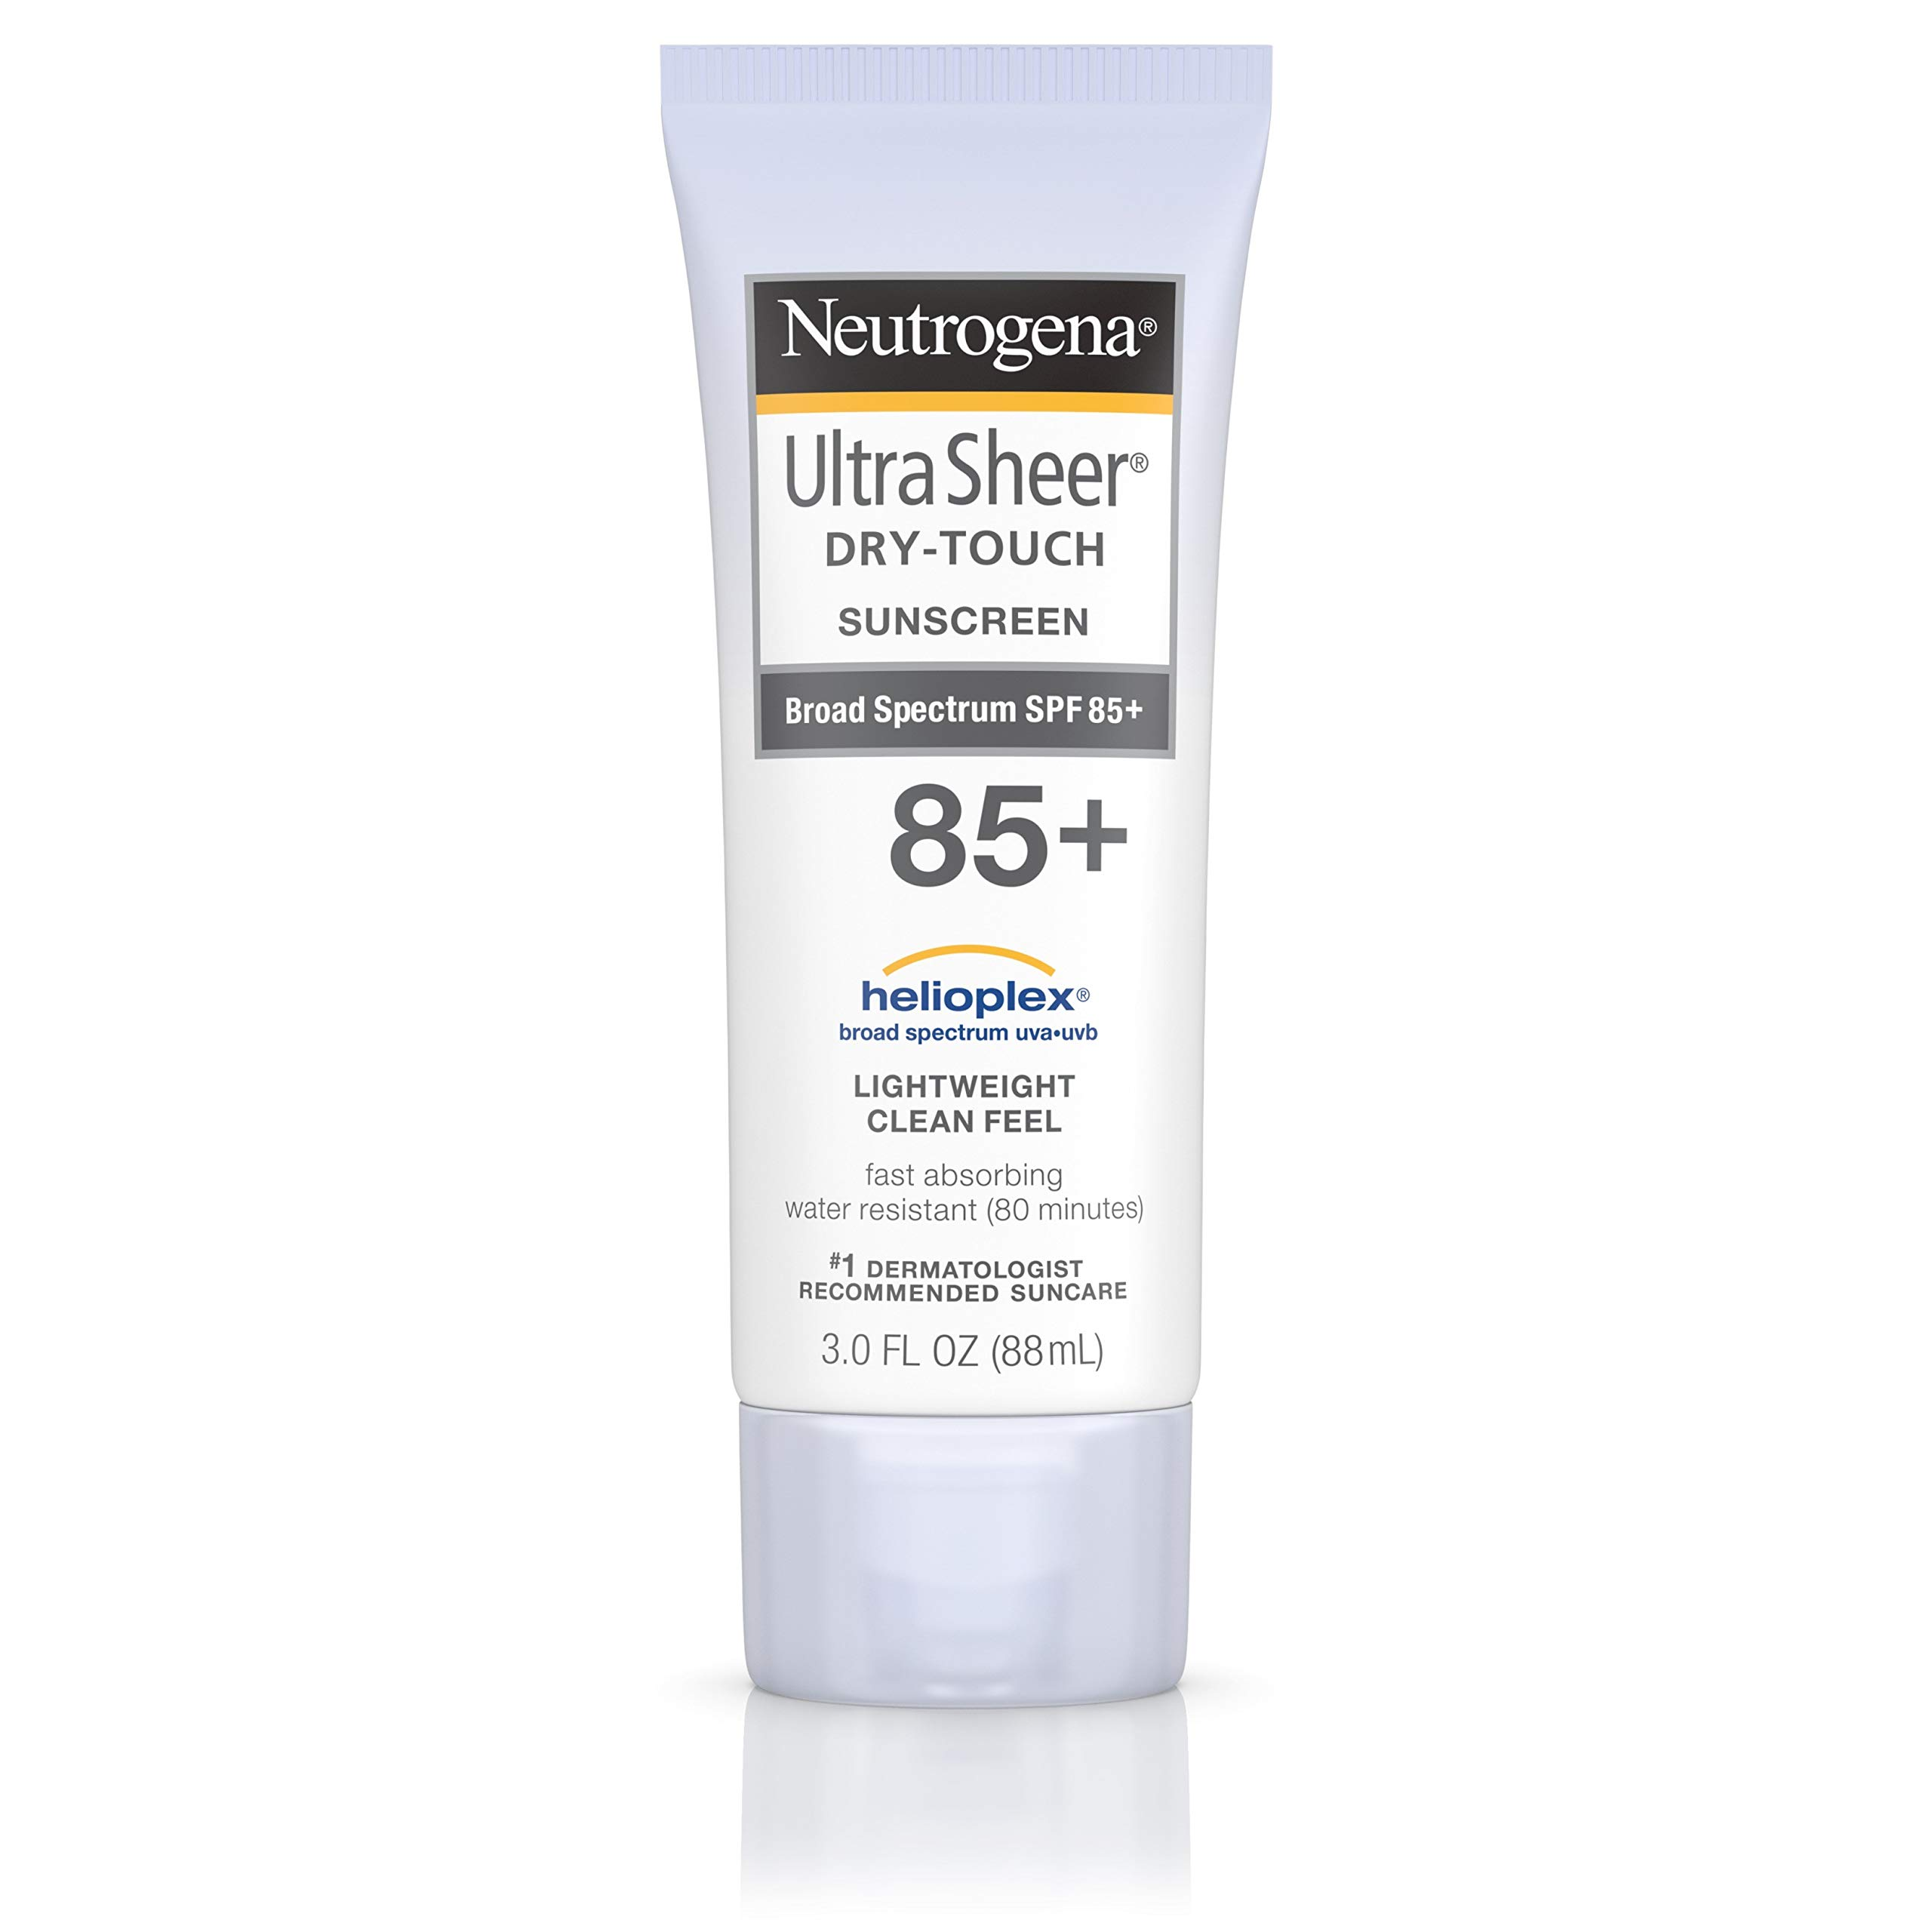 Neutrogena Ultra Sheer Dry-Touch Water Resistant and Non-Greasy Sunscreen Lotion with Broad Spectrum SPF 85, 3 fl. oz